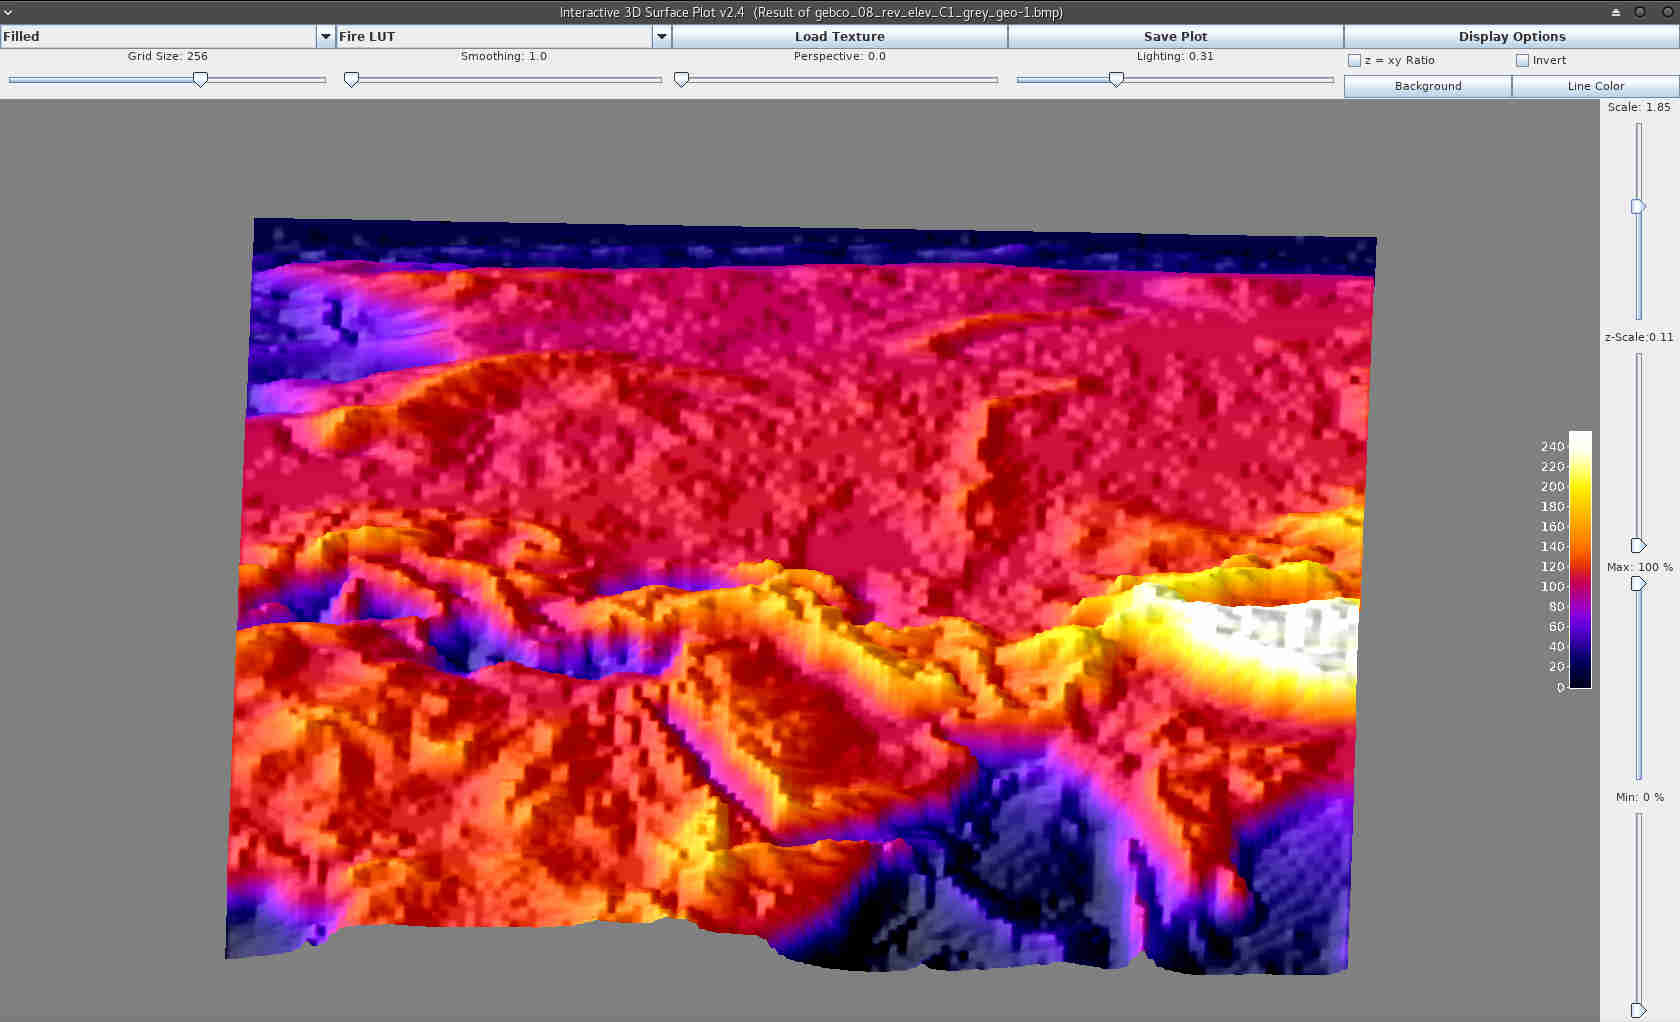 Novel method on preparing a heightmap from topographic and